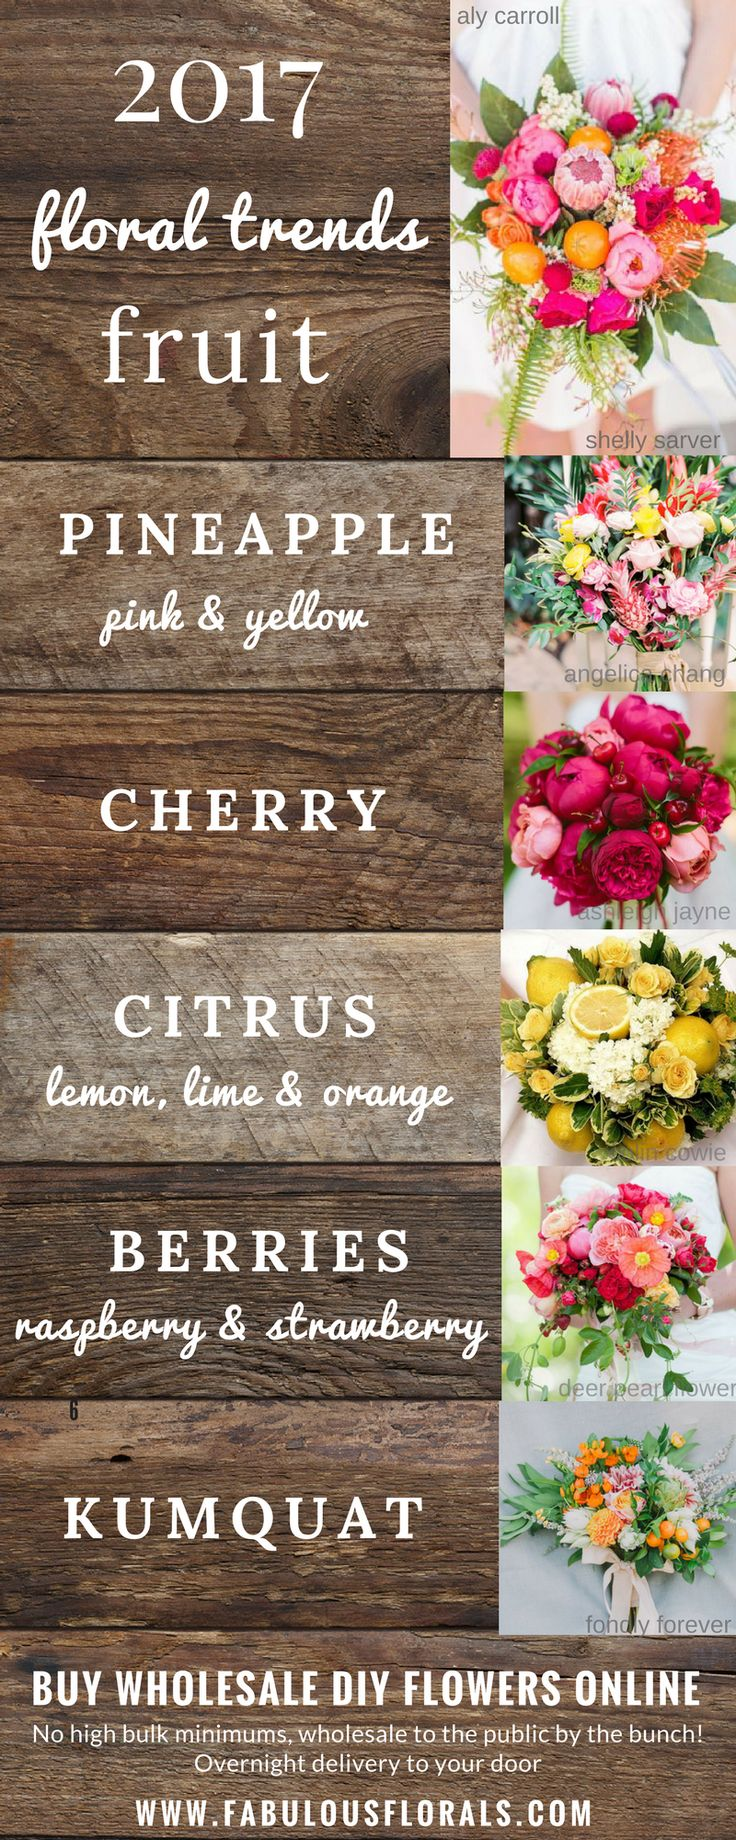 2017 Popular Floral Arrangement Trends - Fruits. 2017 Wedding Bouquet with Fruit Trends